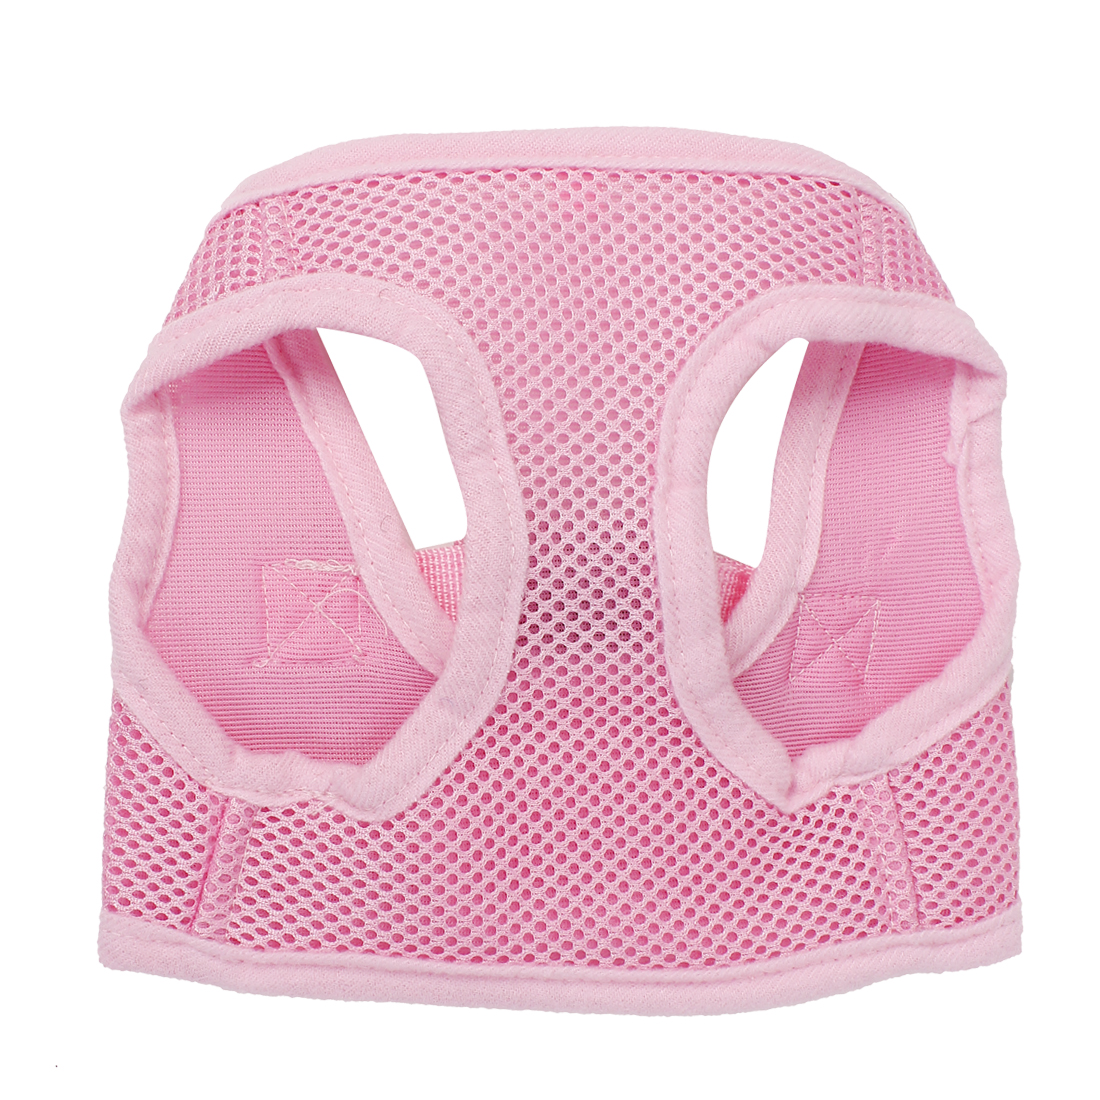 Pet Puppy Dog Adjustable Side Release Buckle Mesh Harness Vest Pink Size XS